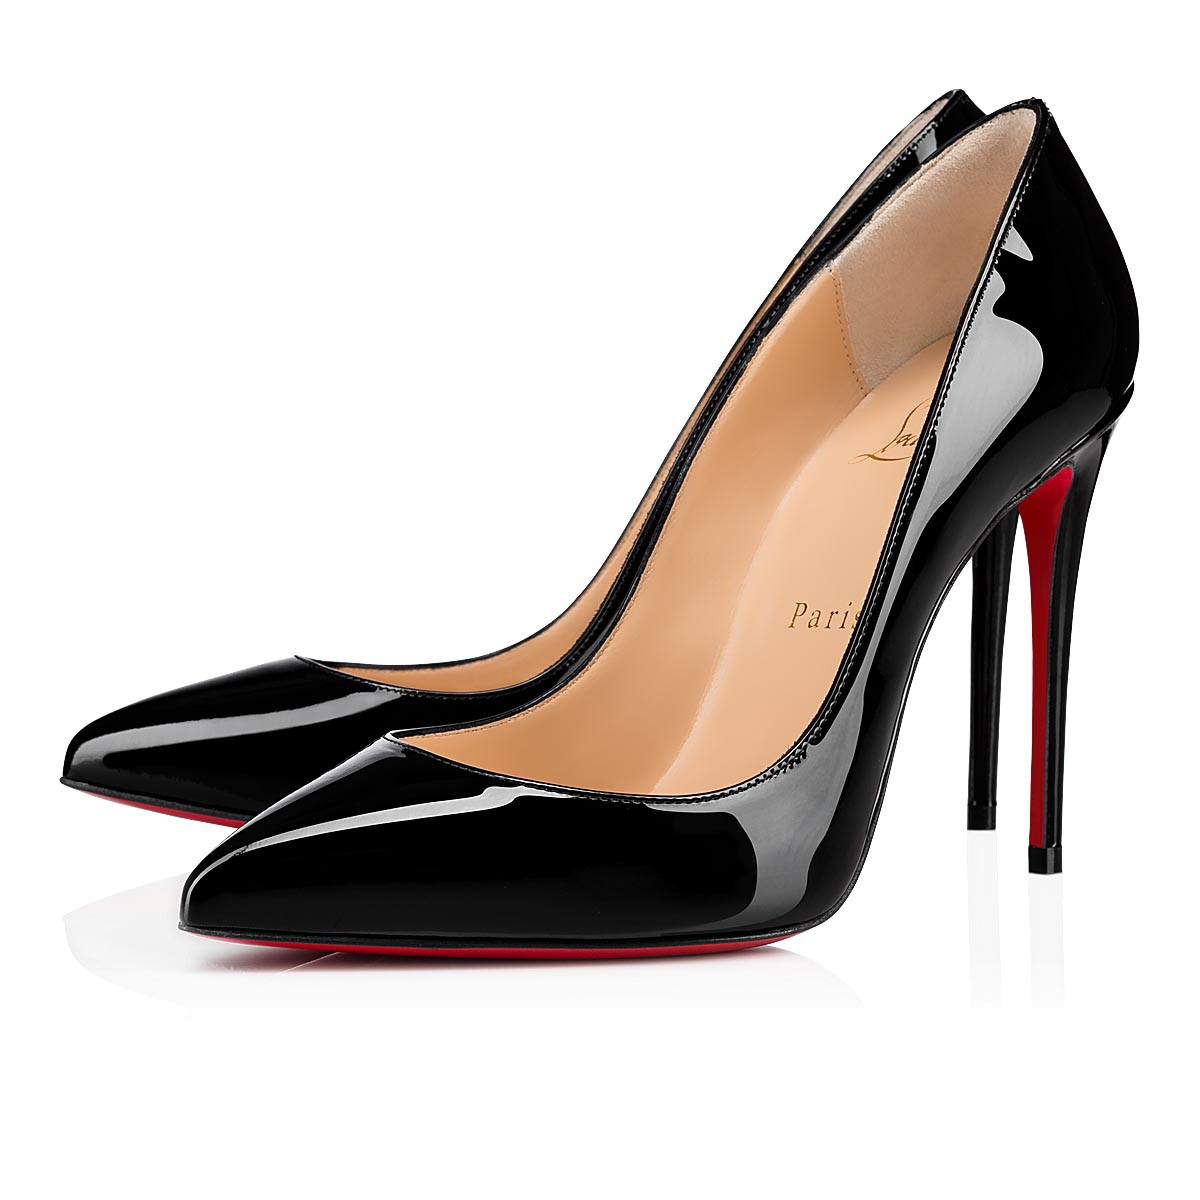 Christian Louboutin Pigalle Follies Black Patent Leather Pumps